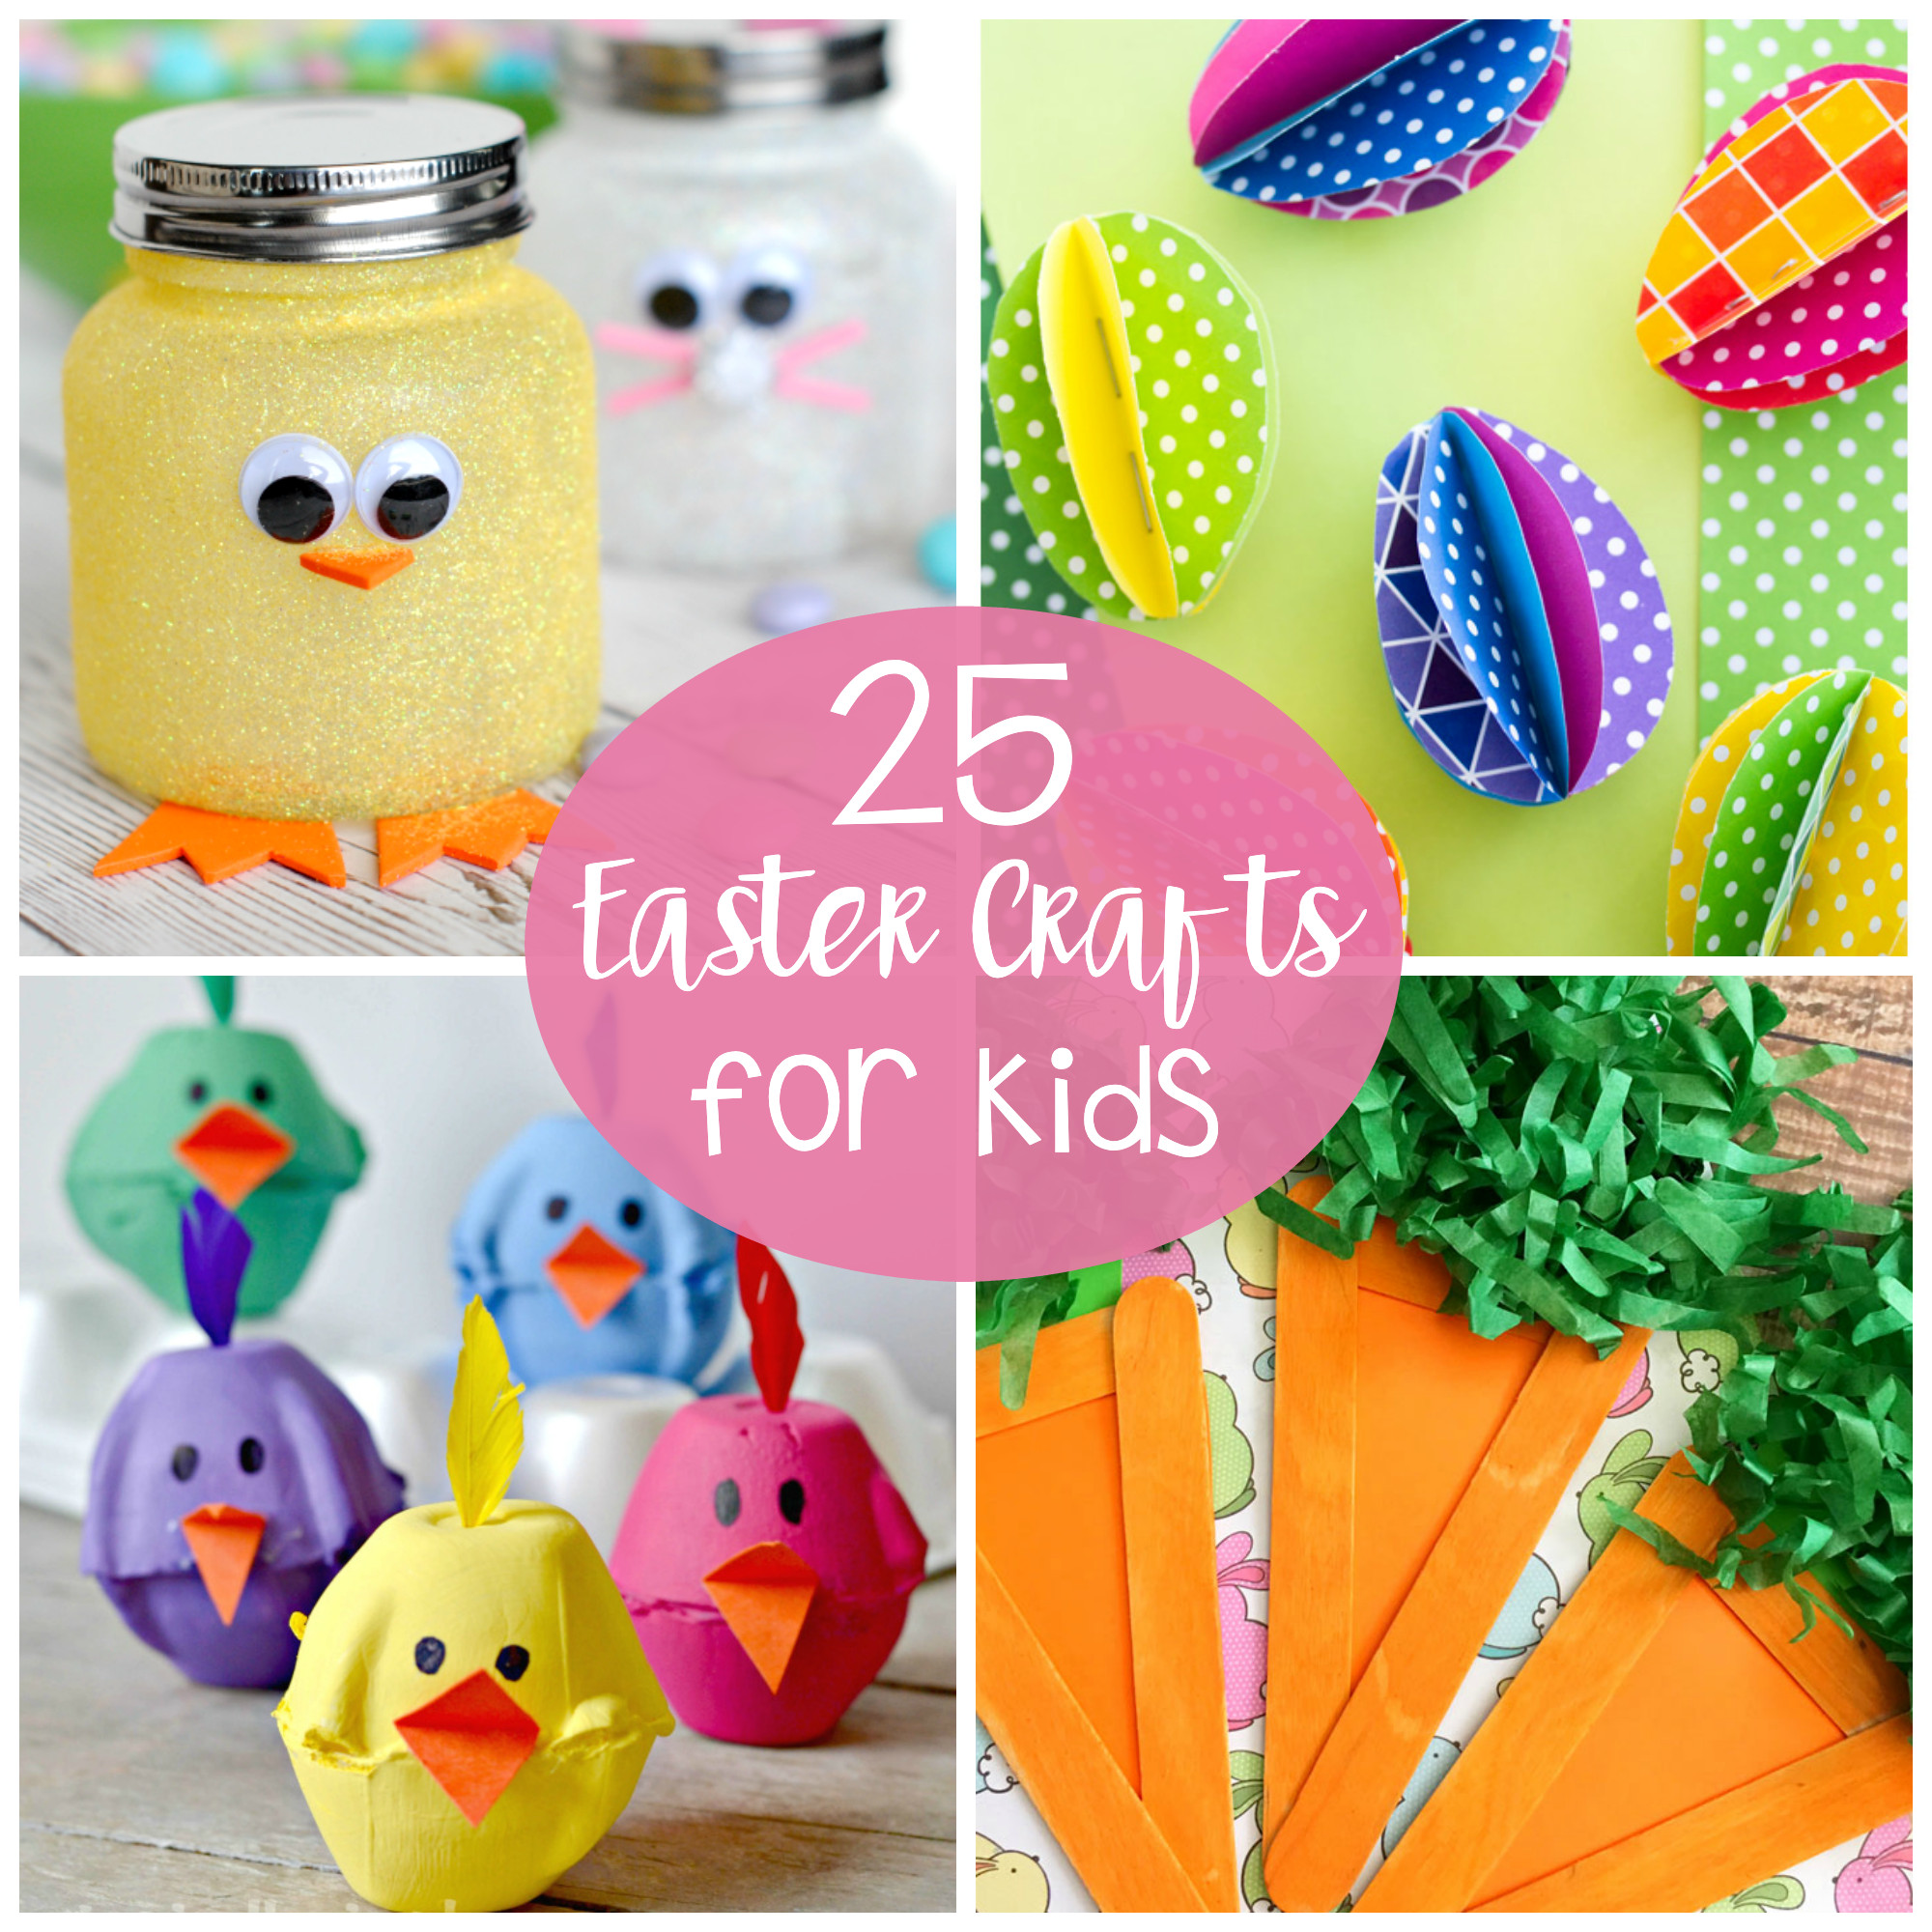 Arts And Crafts For Little Kids  25 Cute and Fun Easter Crafts for Kids Crazy Little Projects